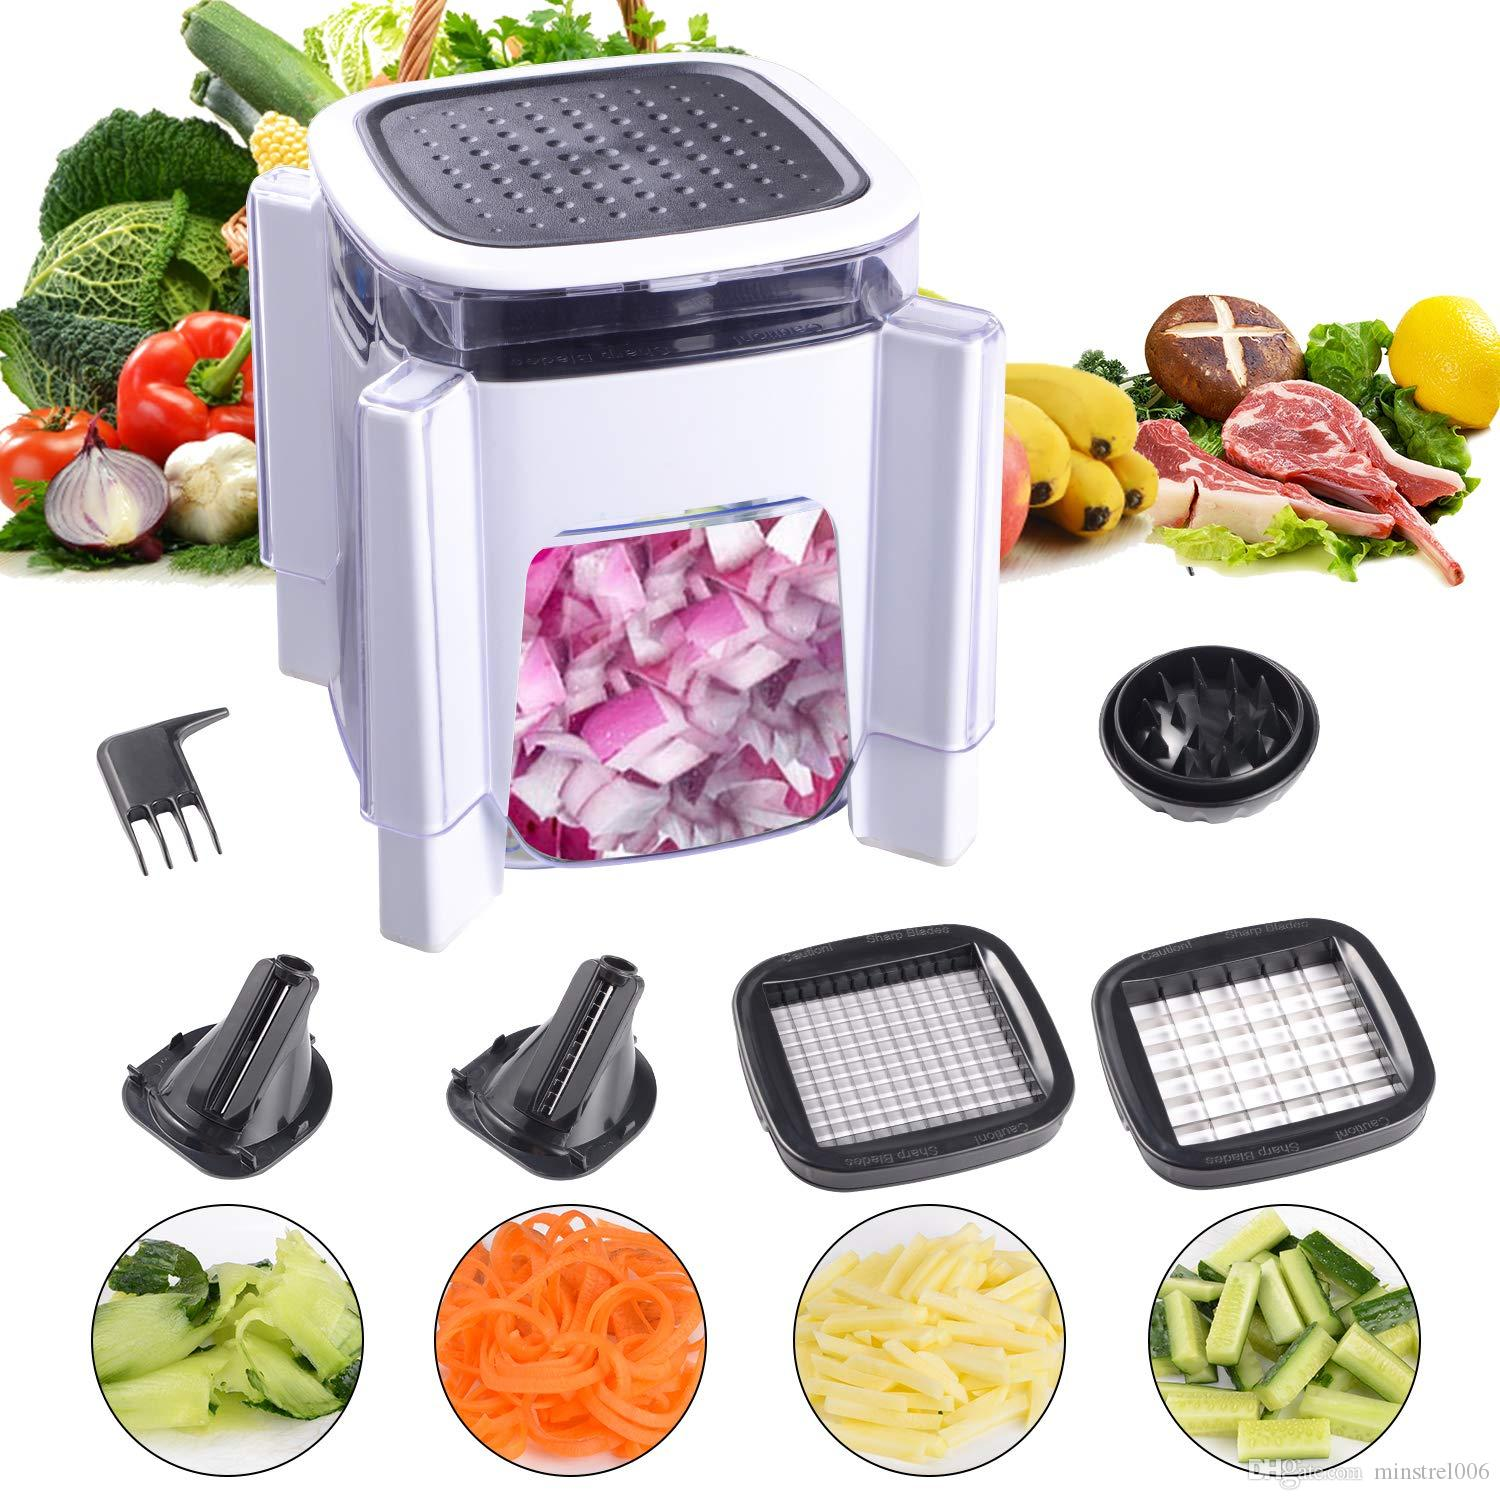 vegetable chopper Fun Life onion chopper with a spiral slicer  The food  chopper Plus unique design of the spiral slicer perfect protects the